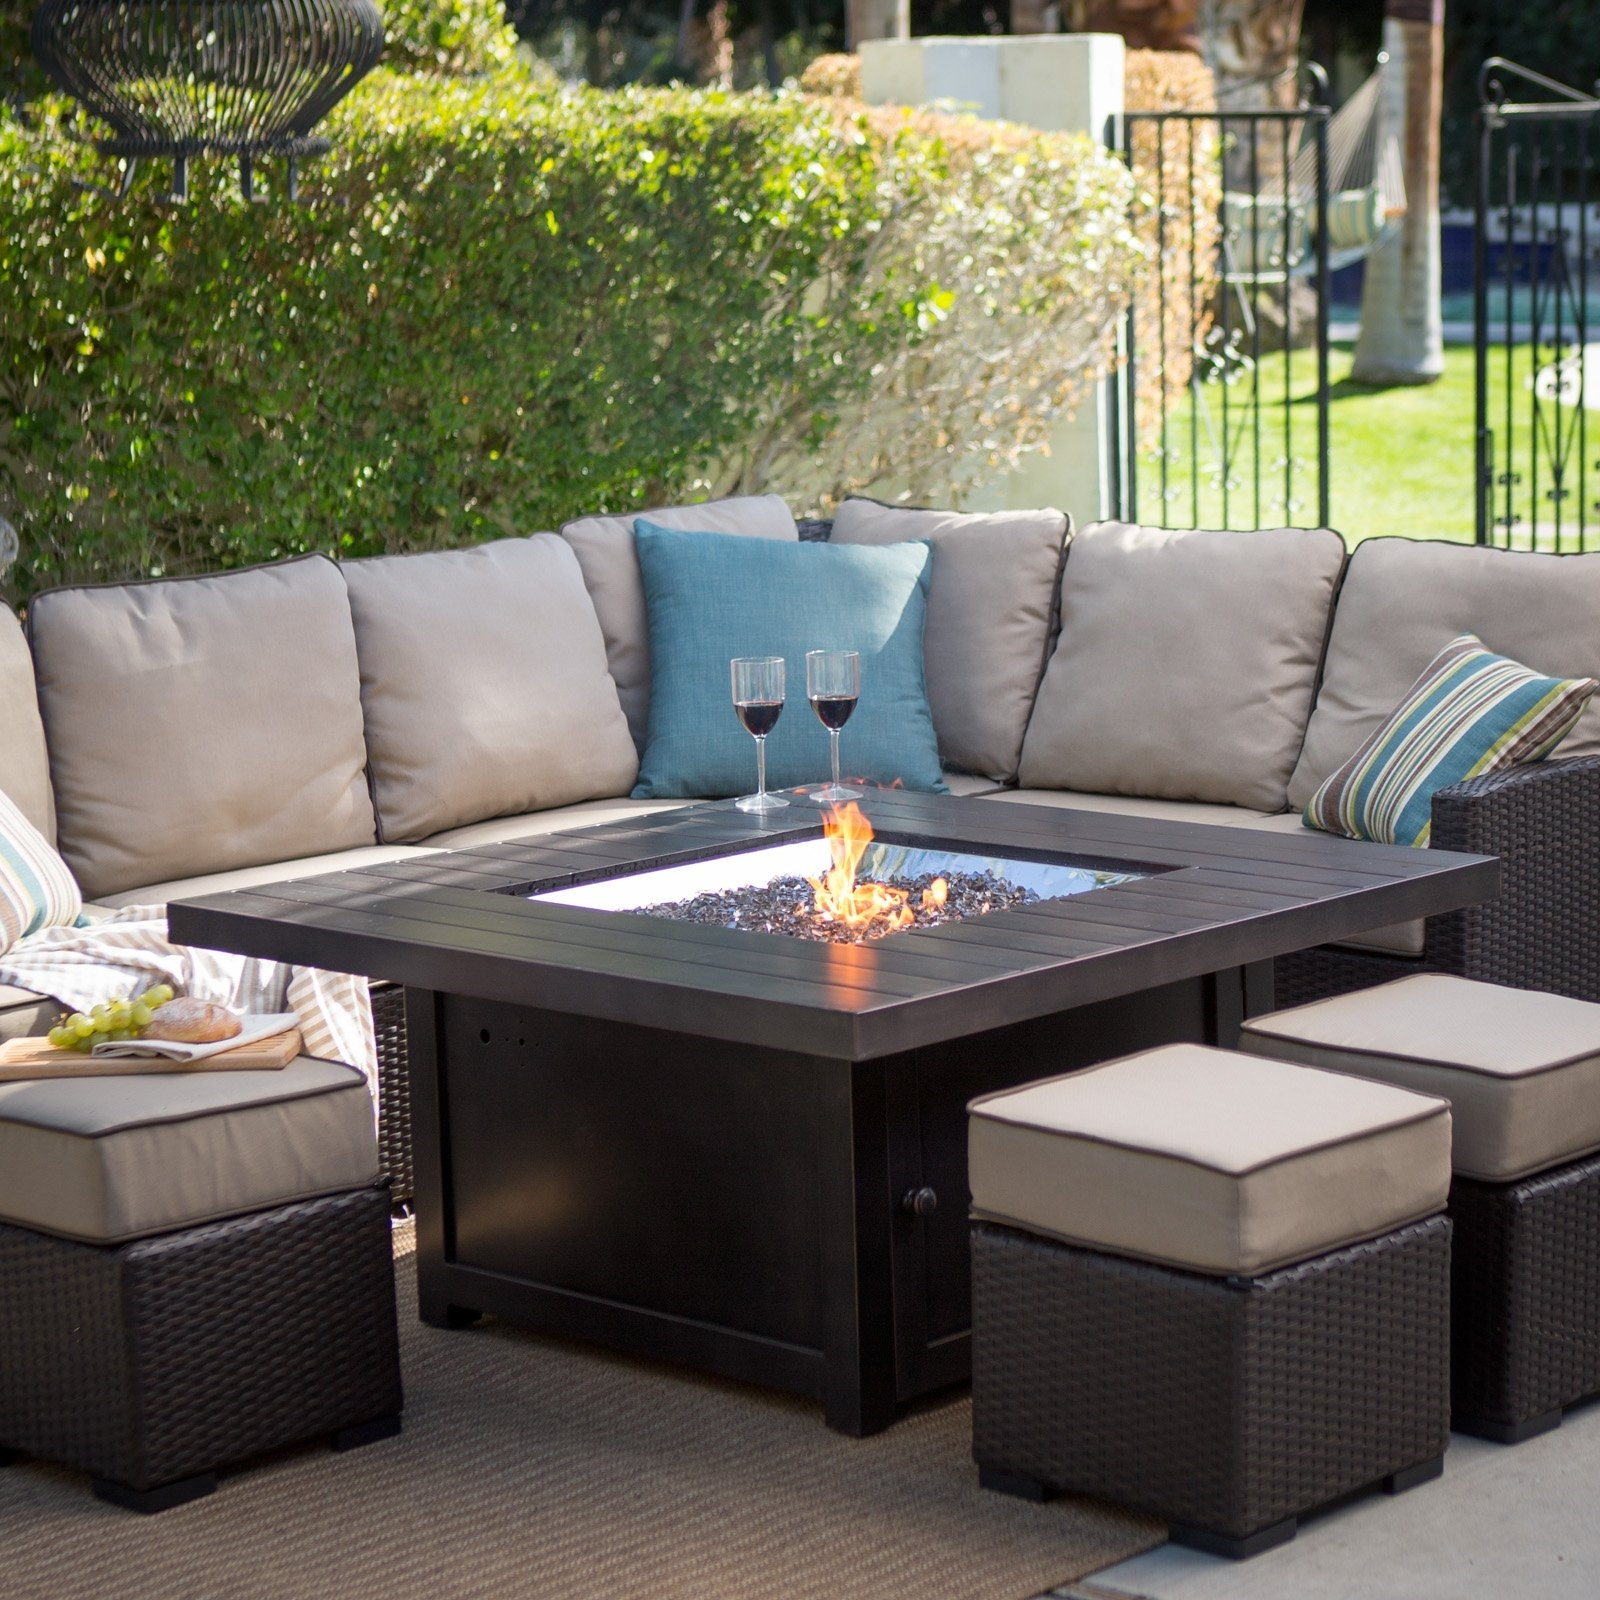 Trendy Furniture: High Quality Patio Furniture Columbus Ohio And Fire Pit For Patio Conversation Sets With Fire Pit Table (View 3 of 15)